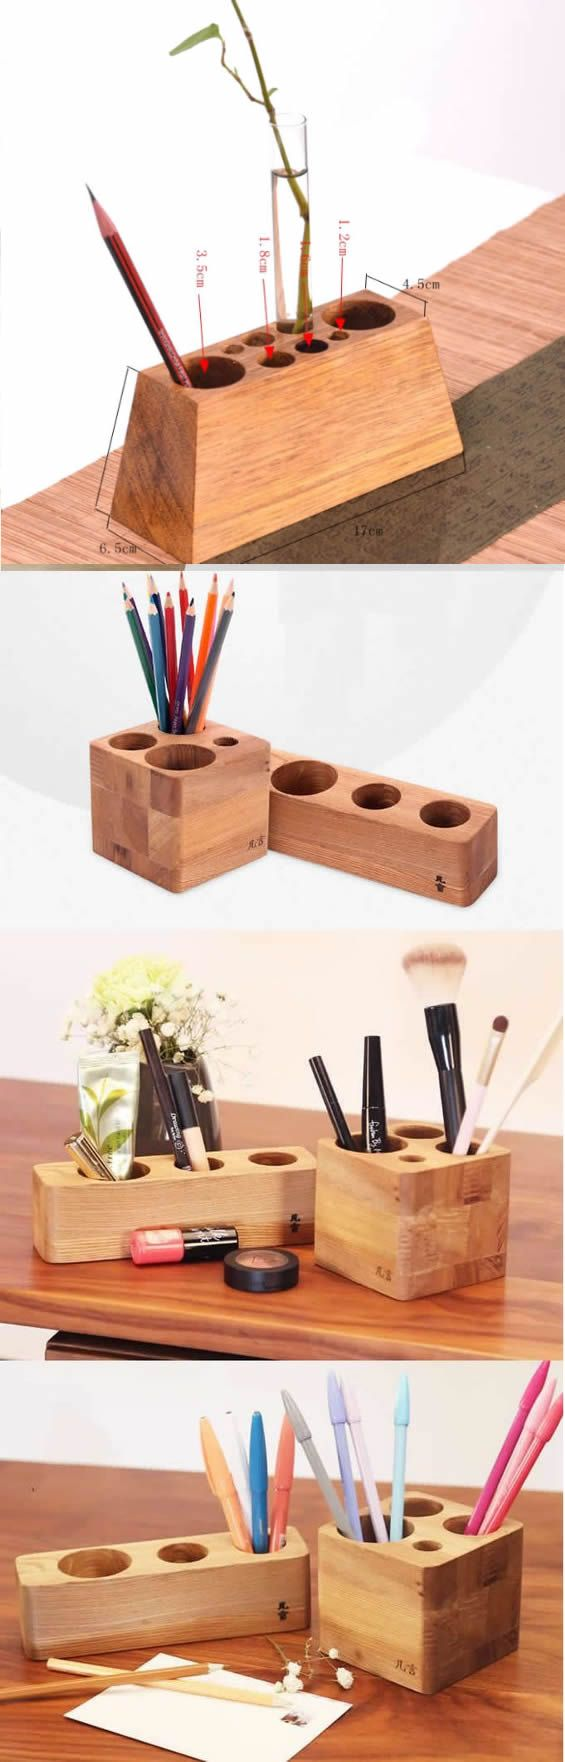 Creative DIY Desk Organizer Ideas To Make Your Desk Cute!  Pen Pencil Holder